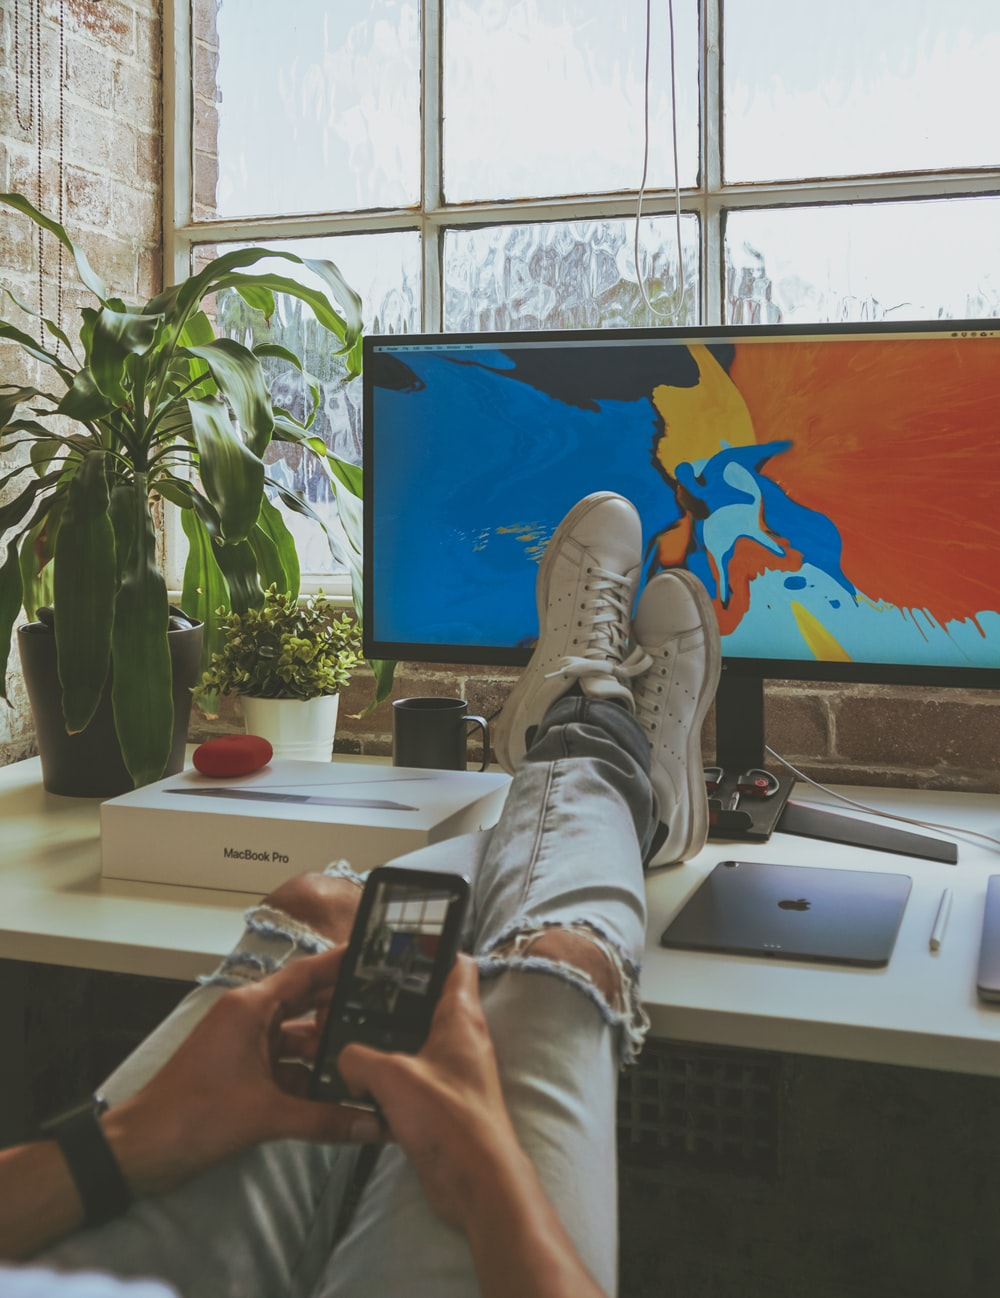 person using smartphone while resting both feet on computer desk